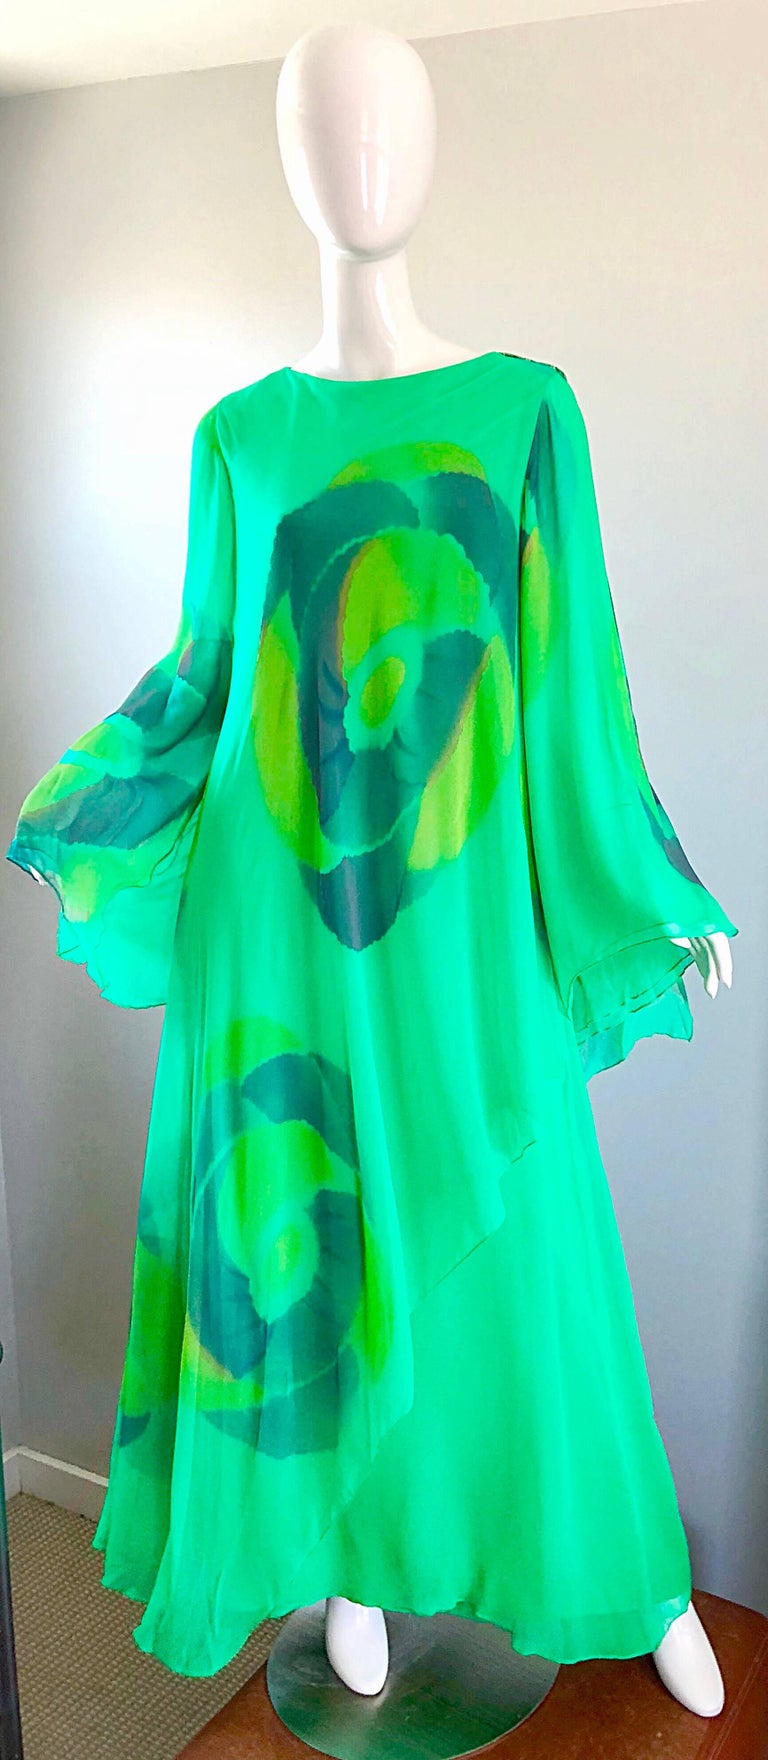 Vintage Travillia Couture 1970s Hand Painted Kelly Green Silk Chiffon 70s Gown For Sale 5